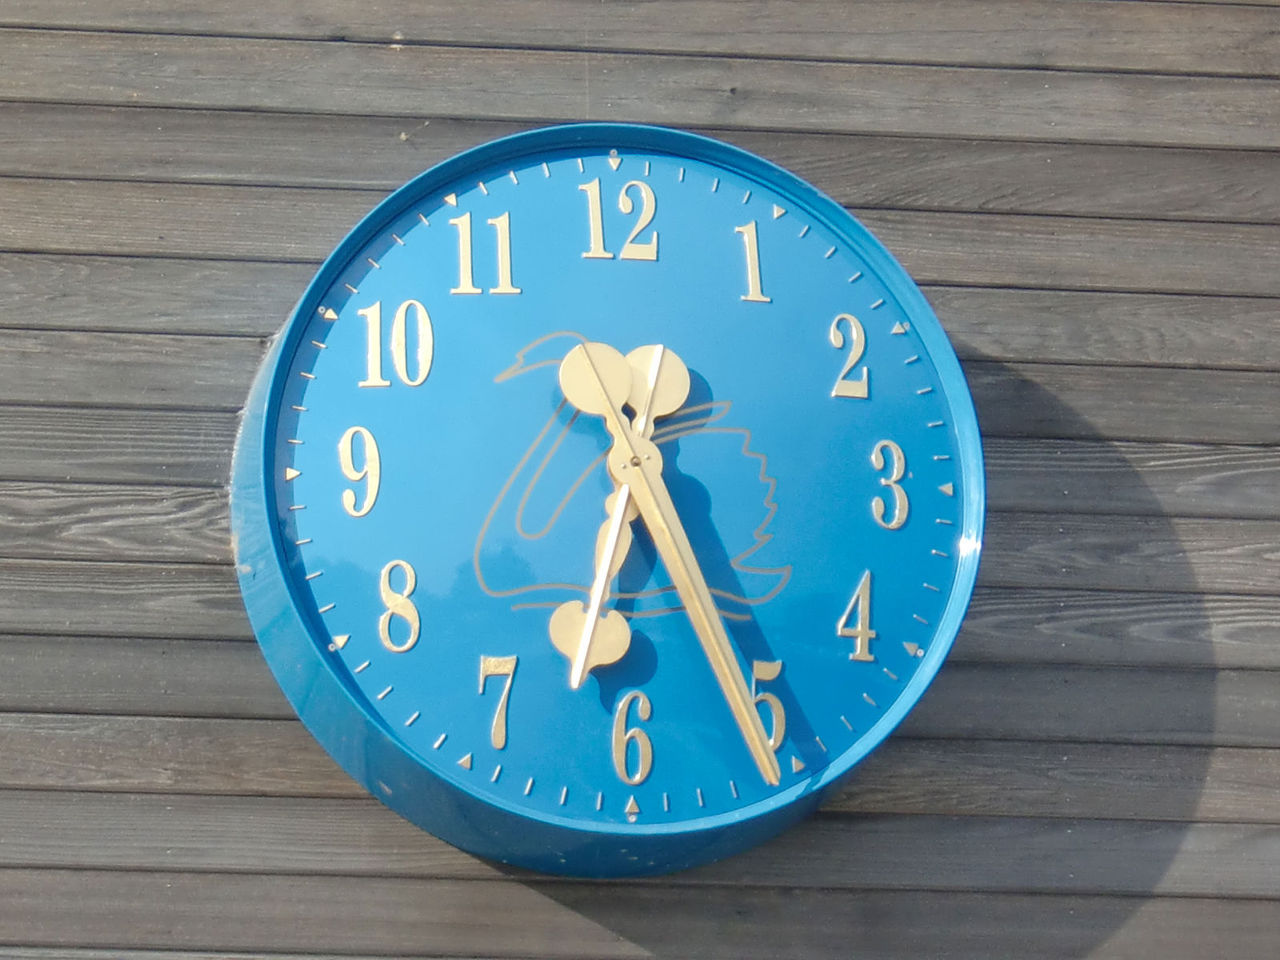 Swanmore School clock installed